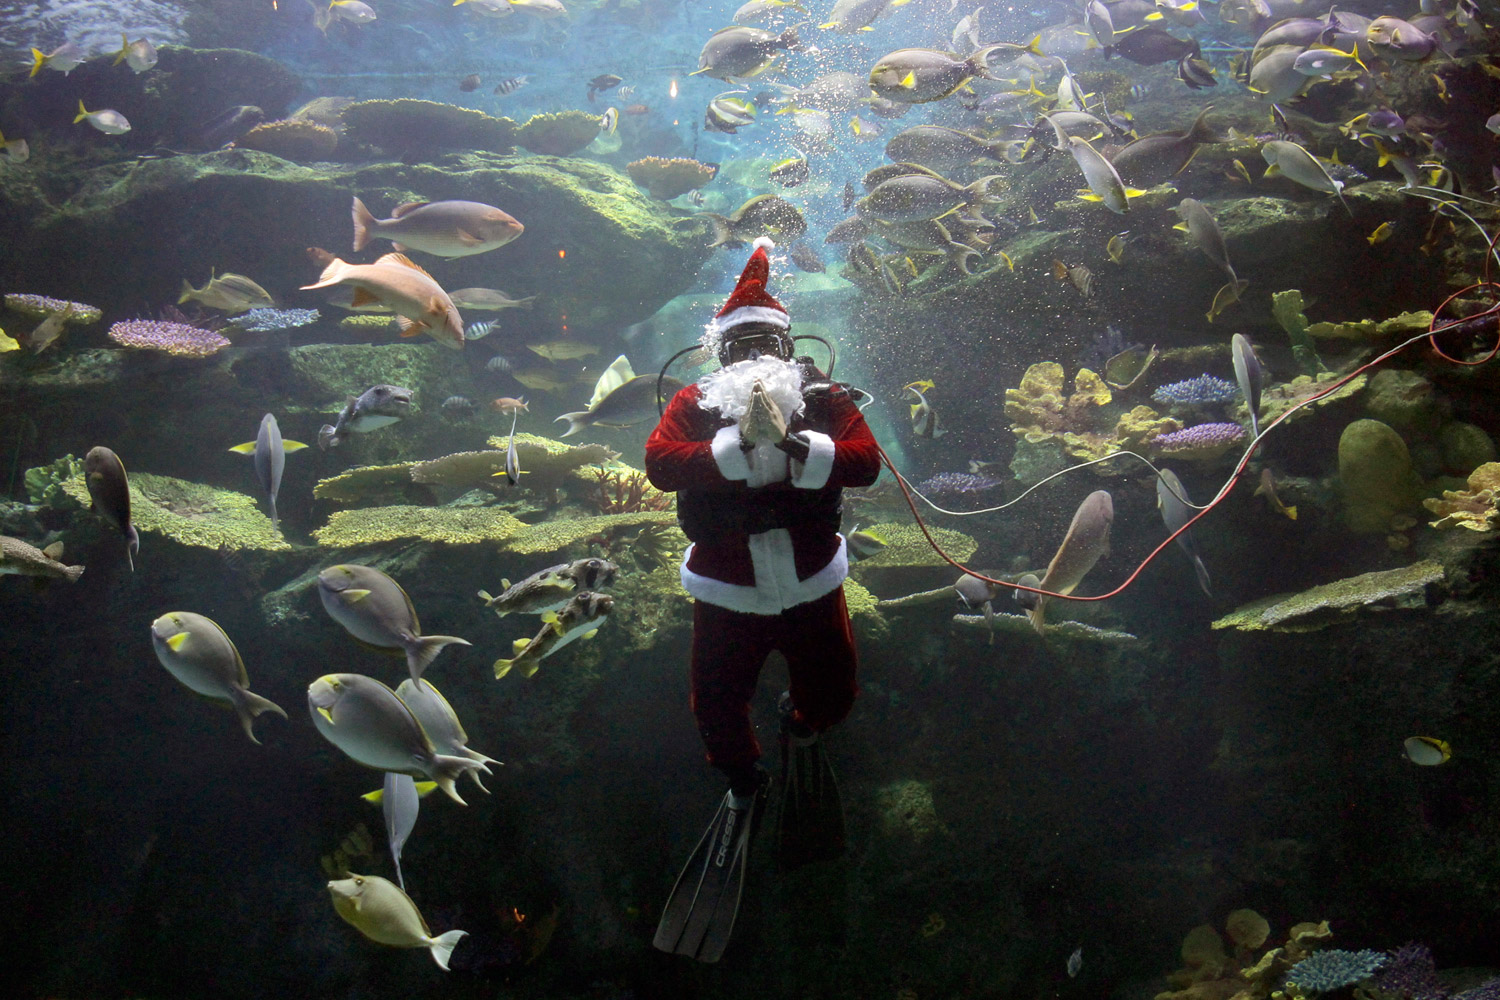 December 2, 2011. A worker in scuba gear dressed as Santa Claus greets spectators during an aquarium show in Bangkok. Though most of its people are Buddhists, Thailand celebrates Christmas as a festival—often with Santa.